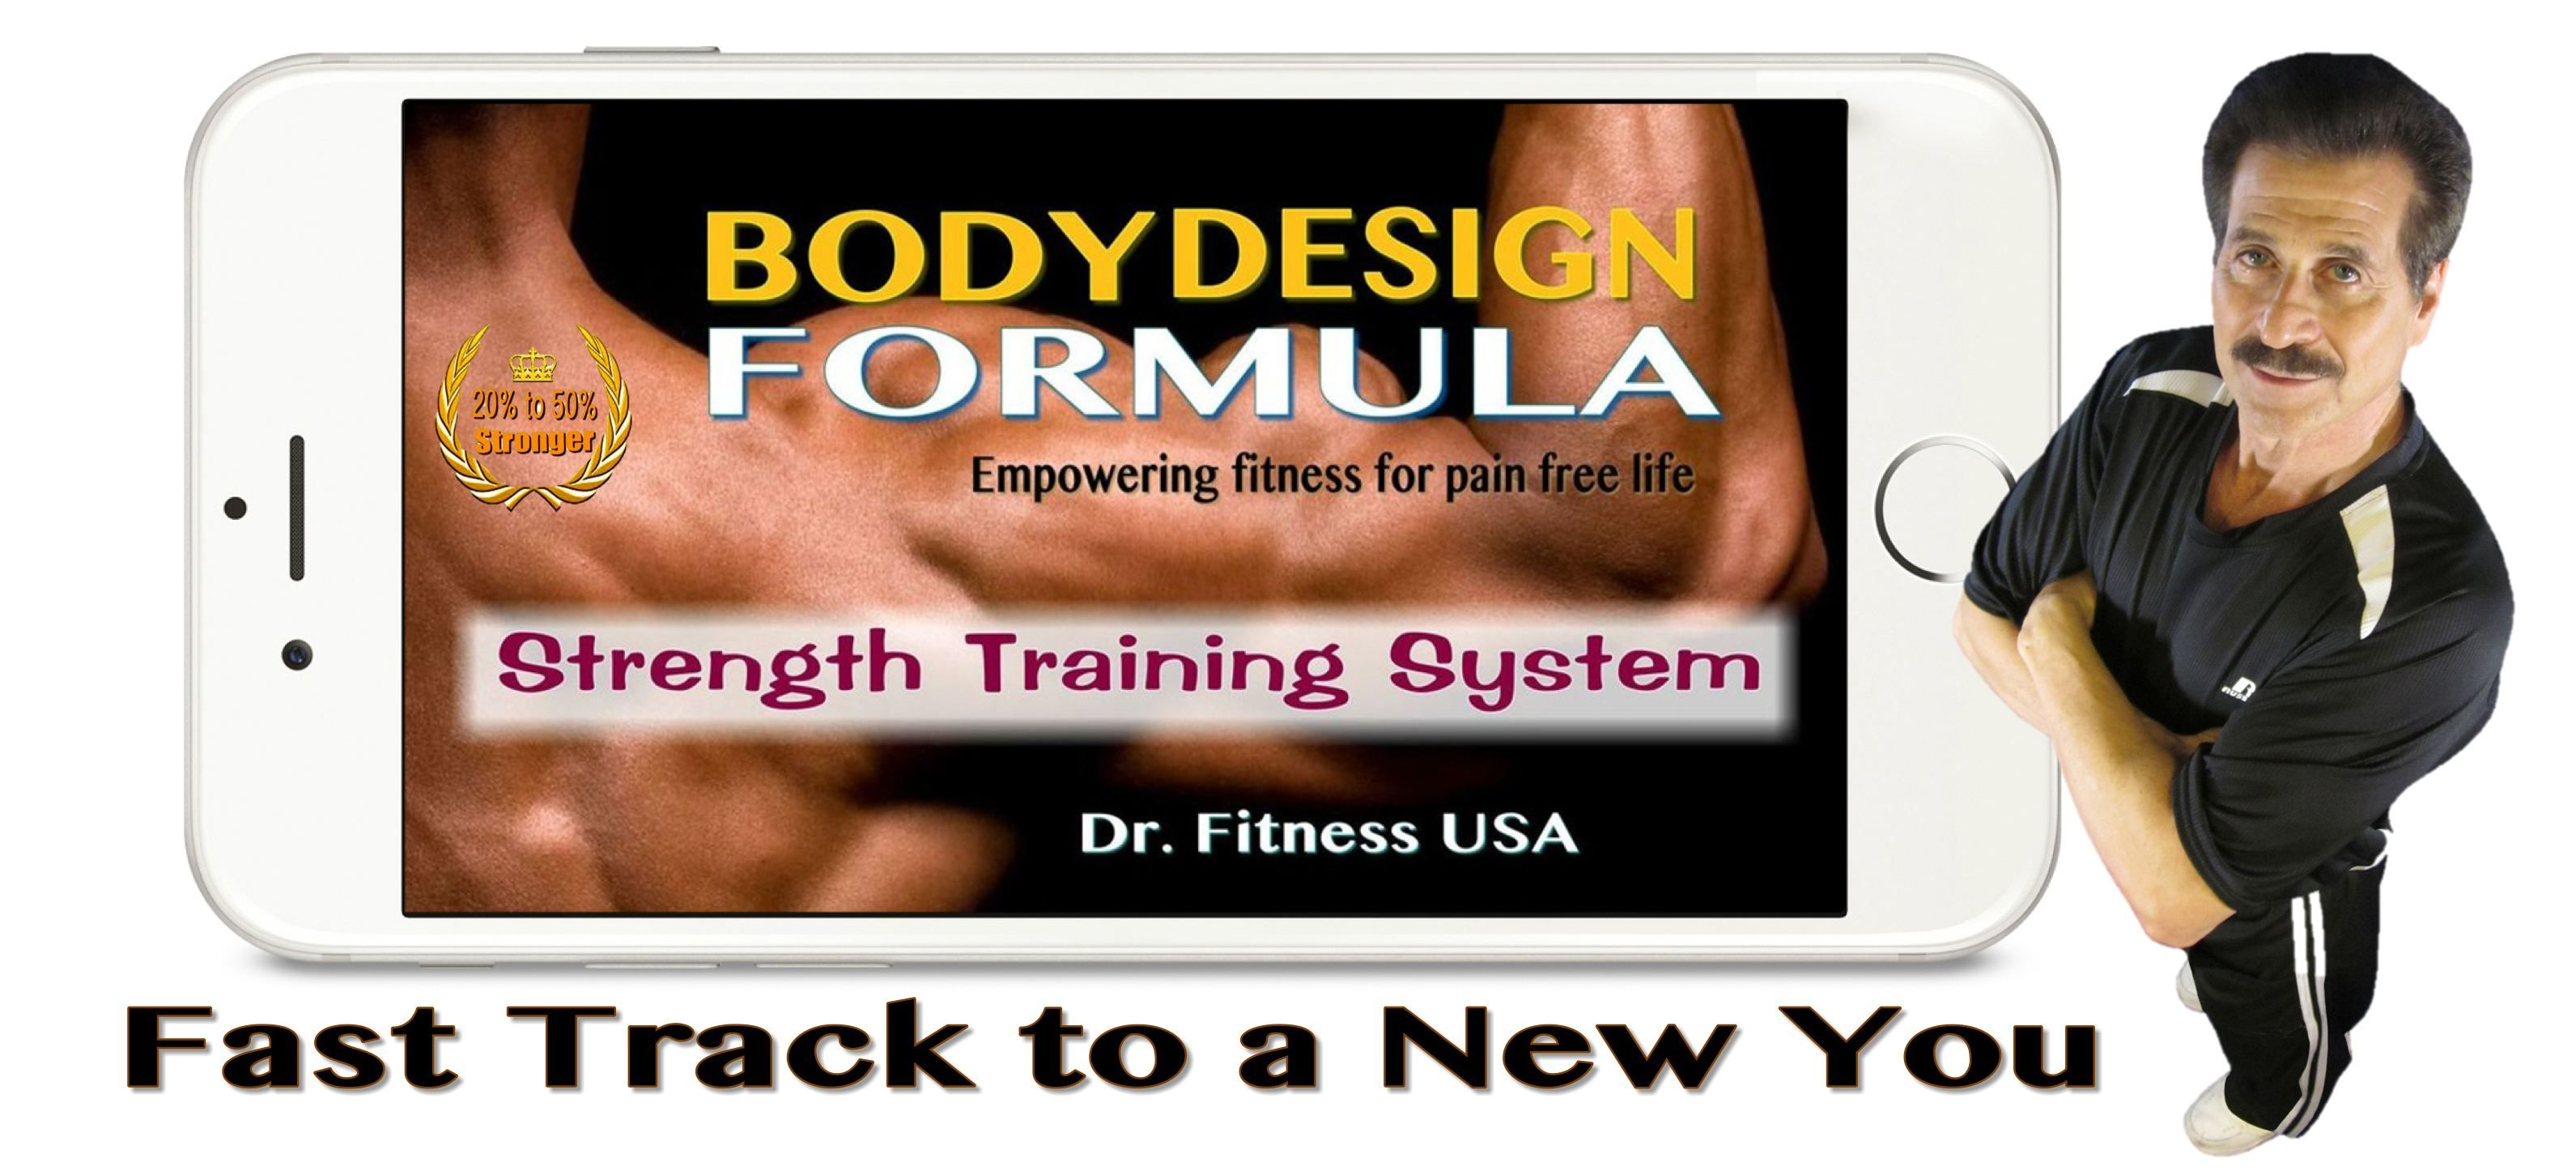 Fast track to a new you with Dr. Fitness USA